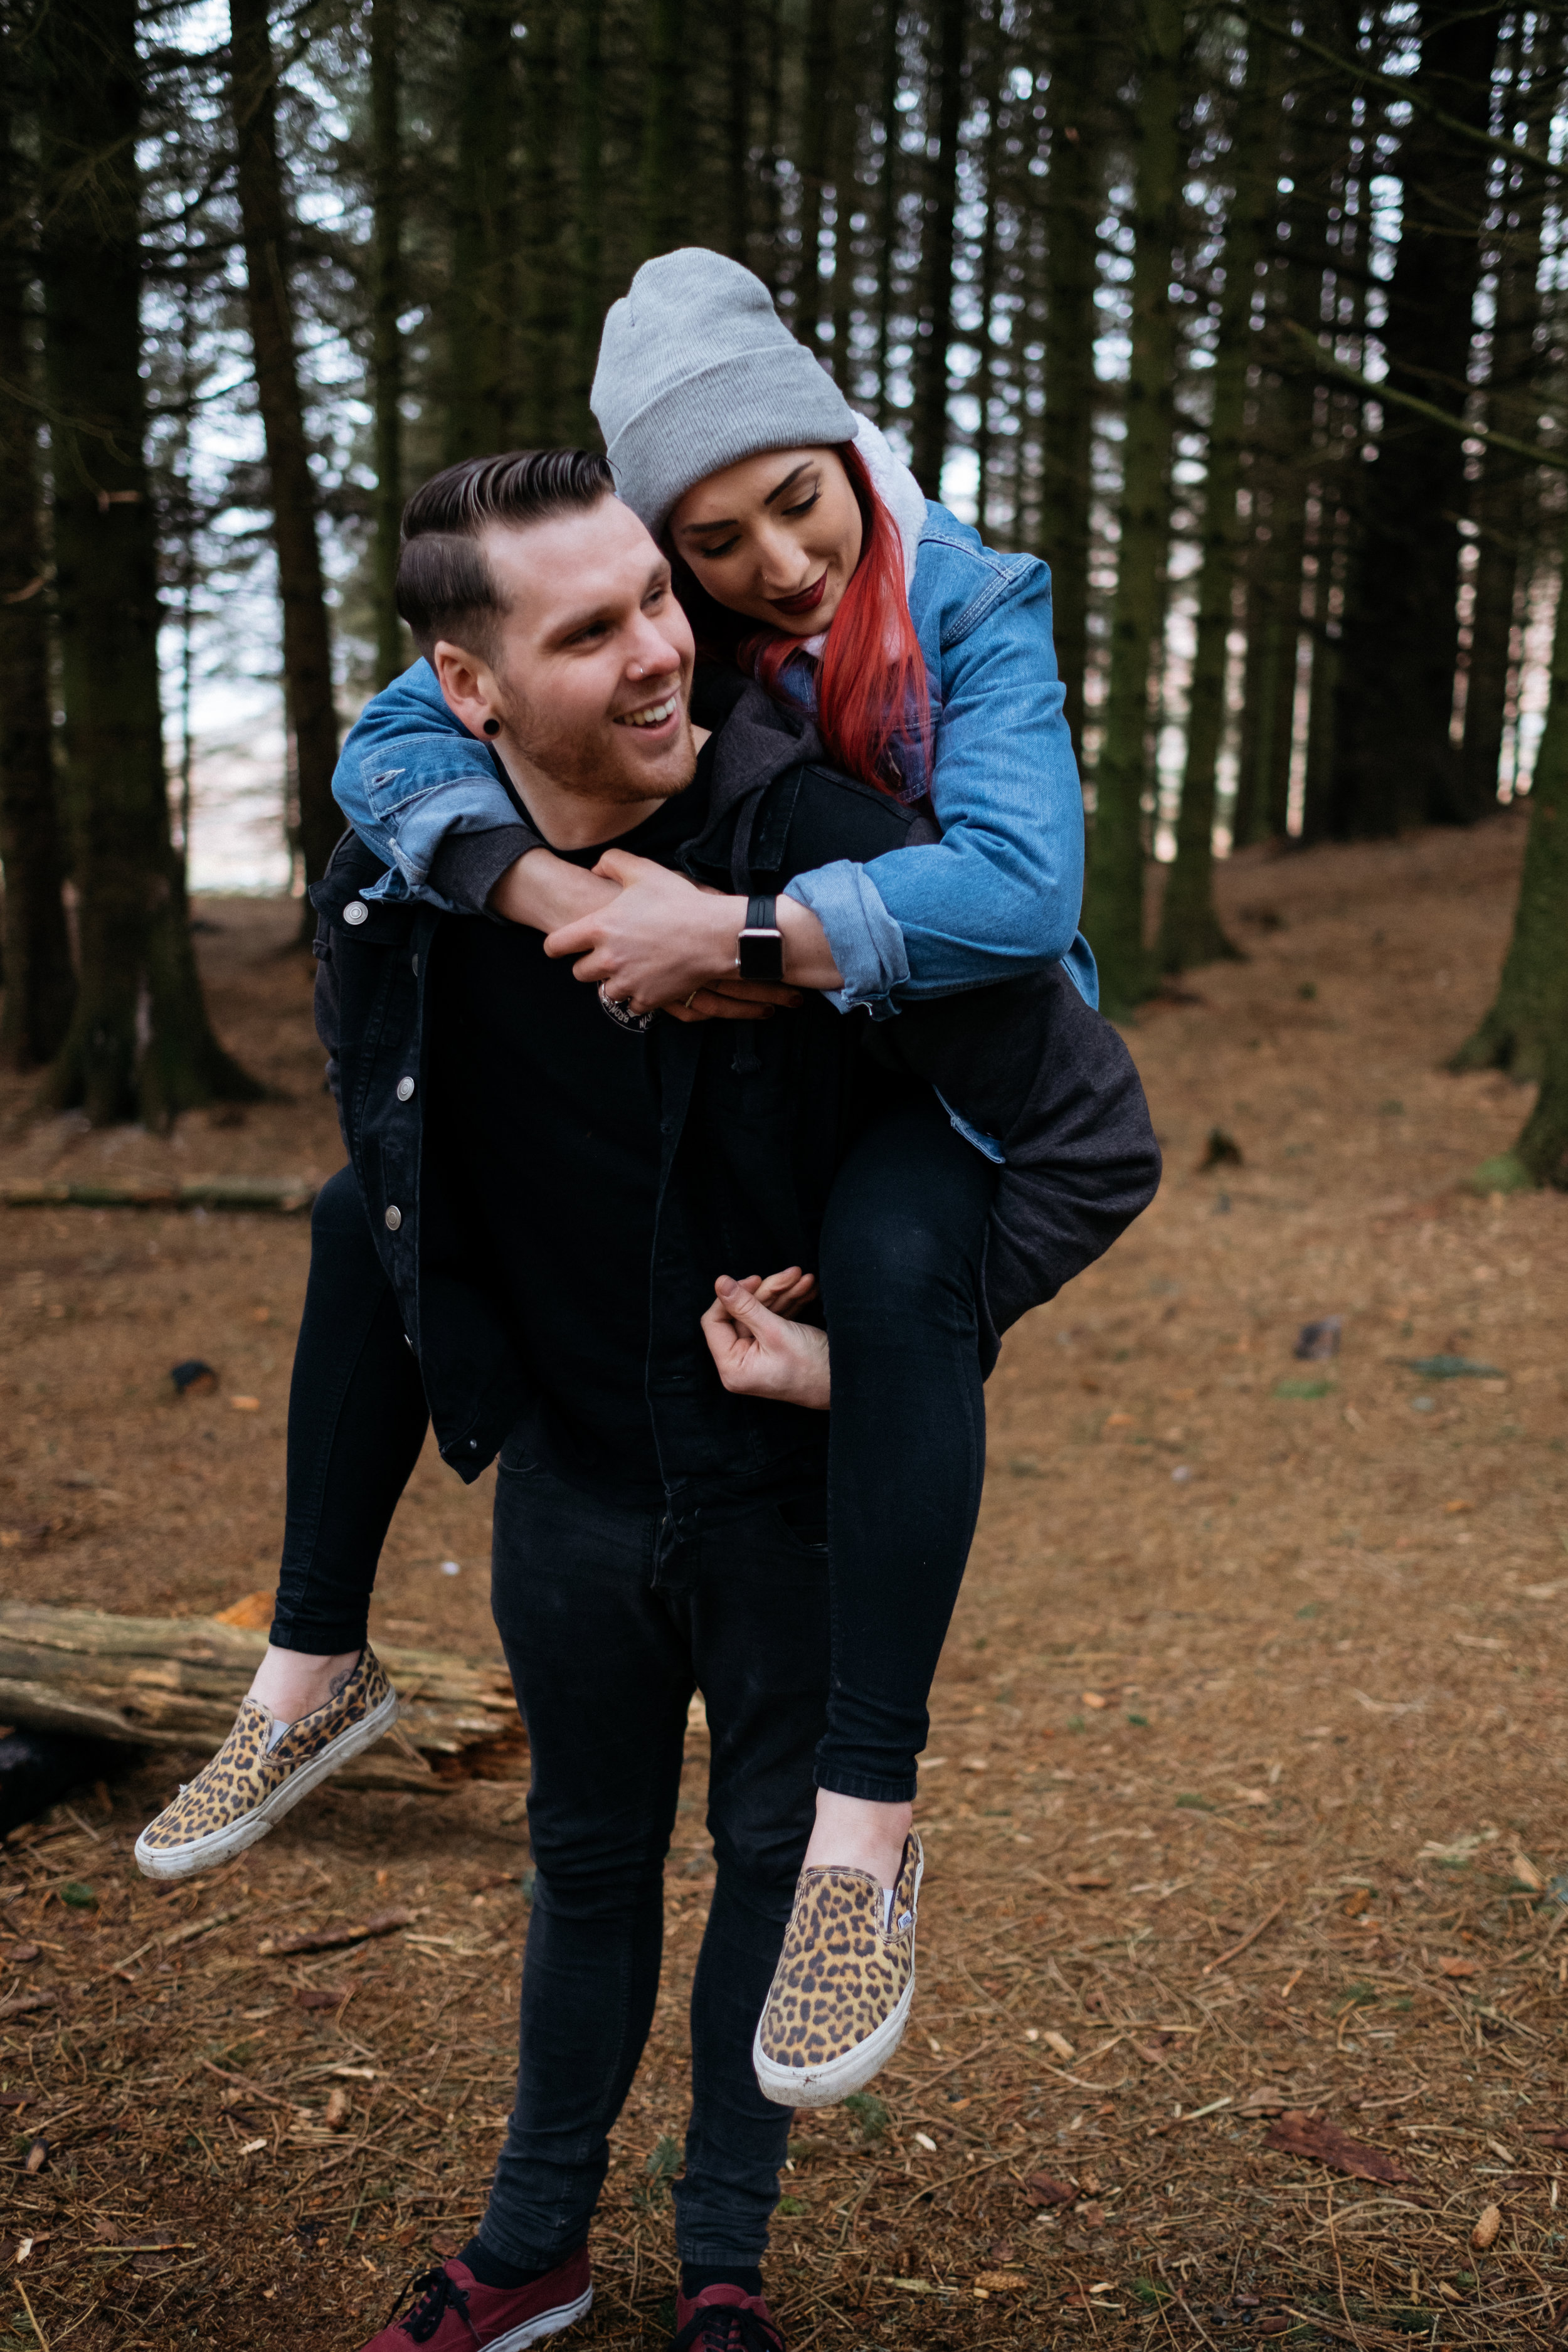 Piggybacks in the woods engagement photography in the Lake District